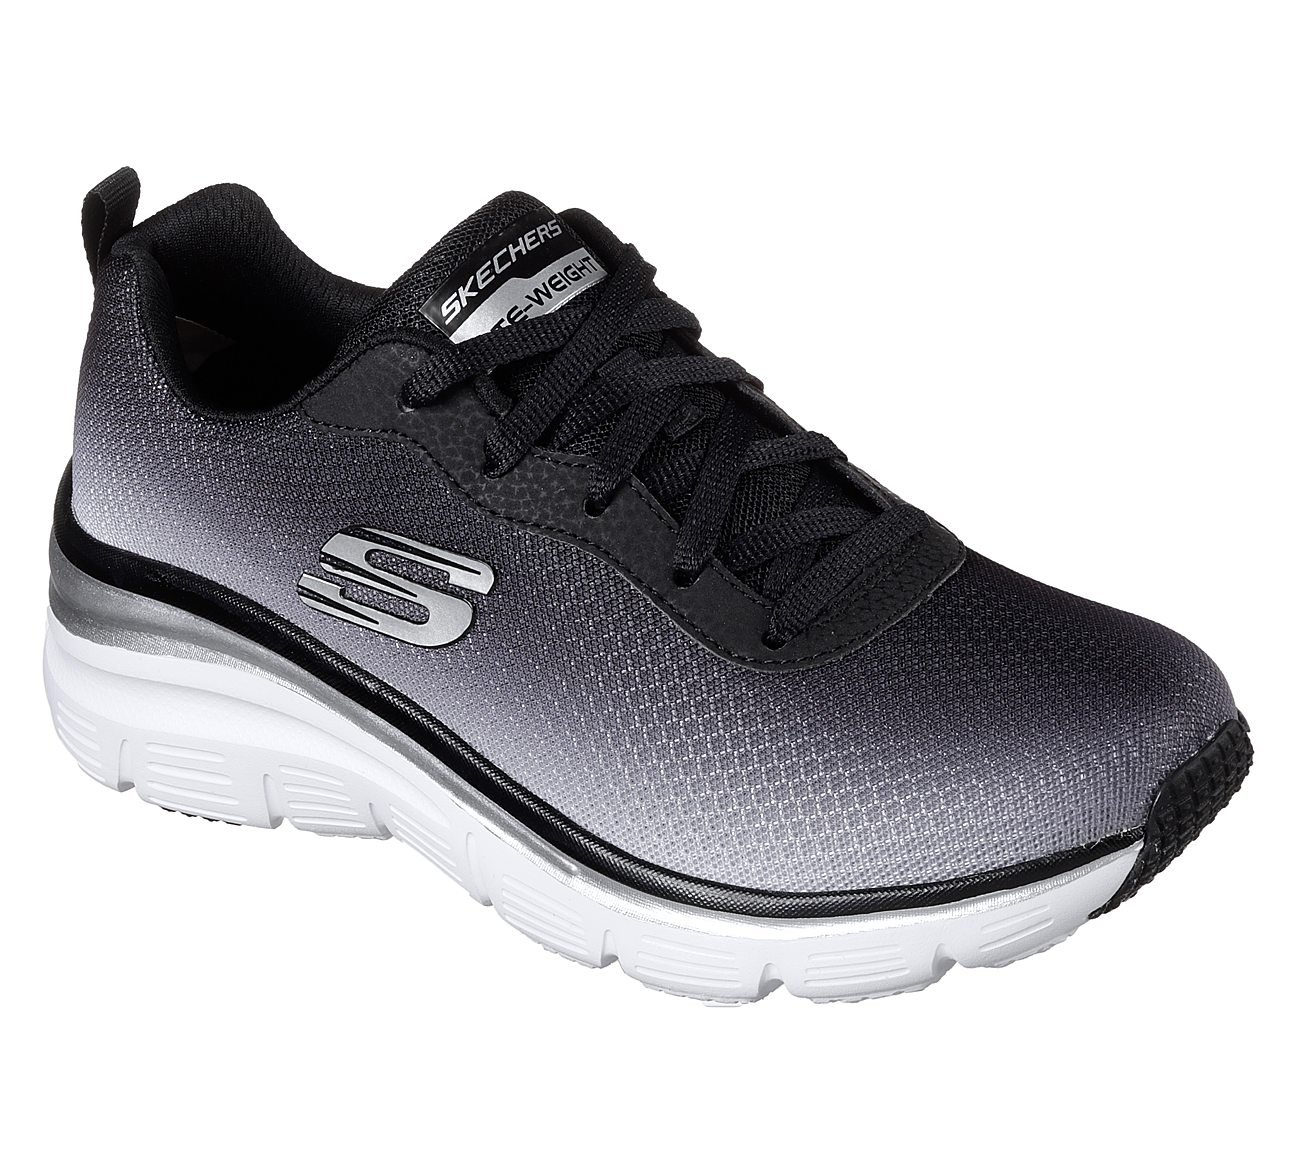 Skechers Fashion Fit Build up Womens Sneakers Black/White 7.5